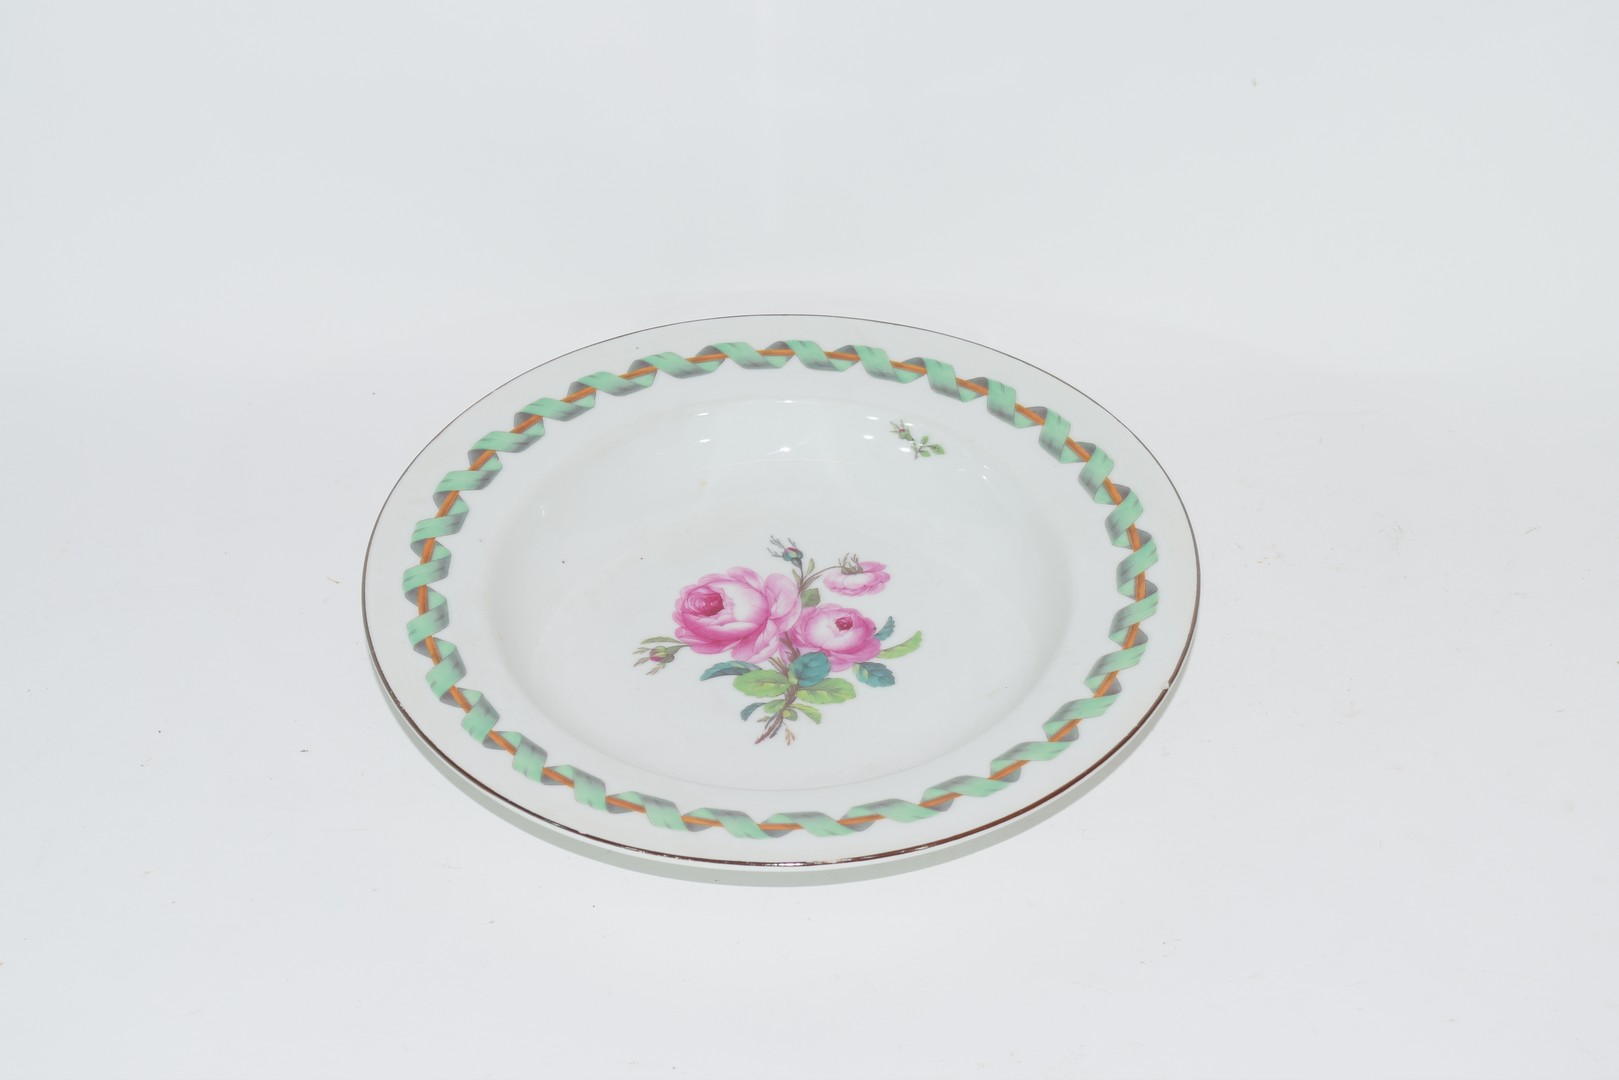 Berlin porcelain bowl decorated with central spray of roses